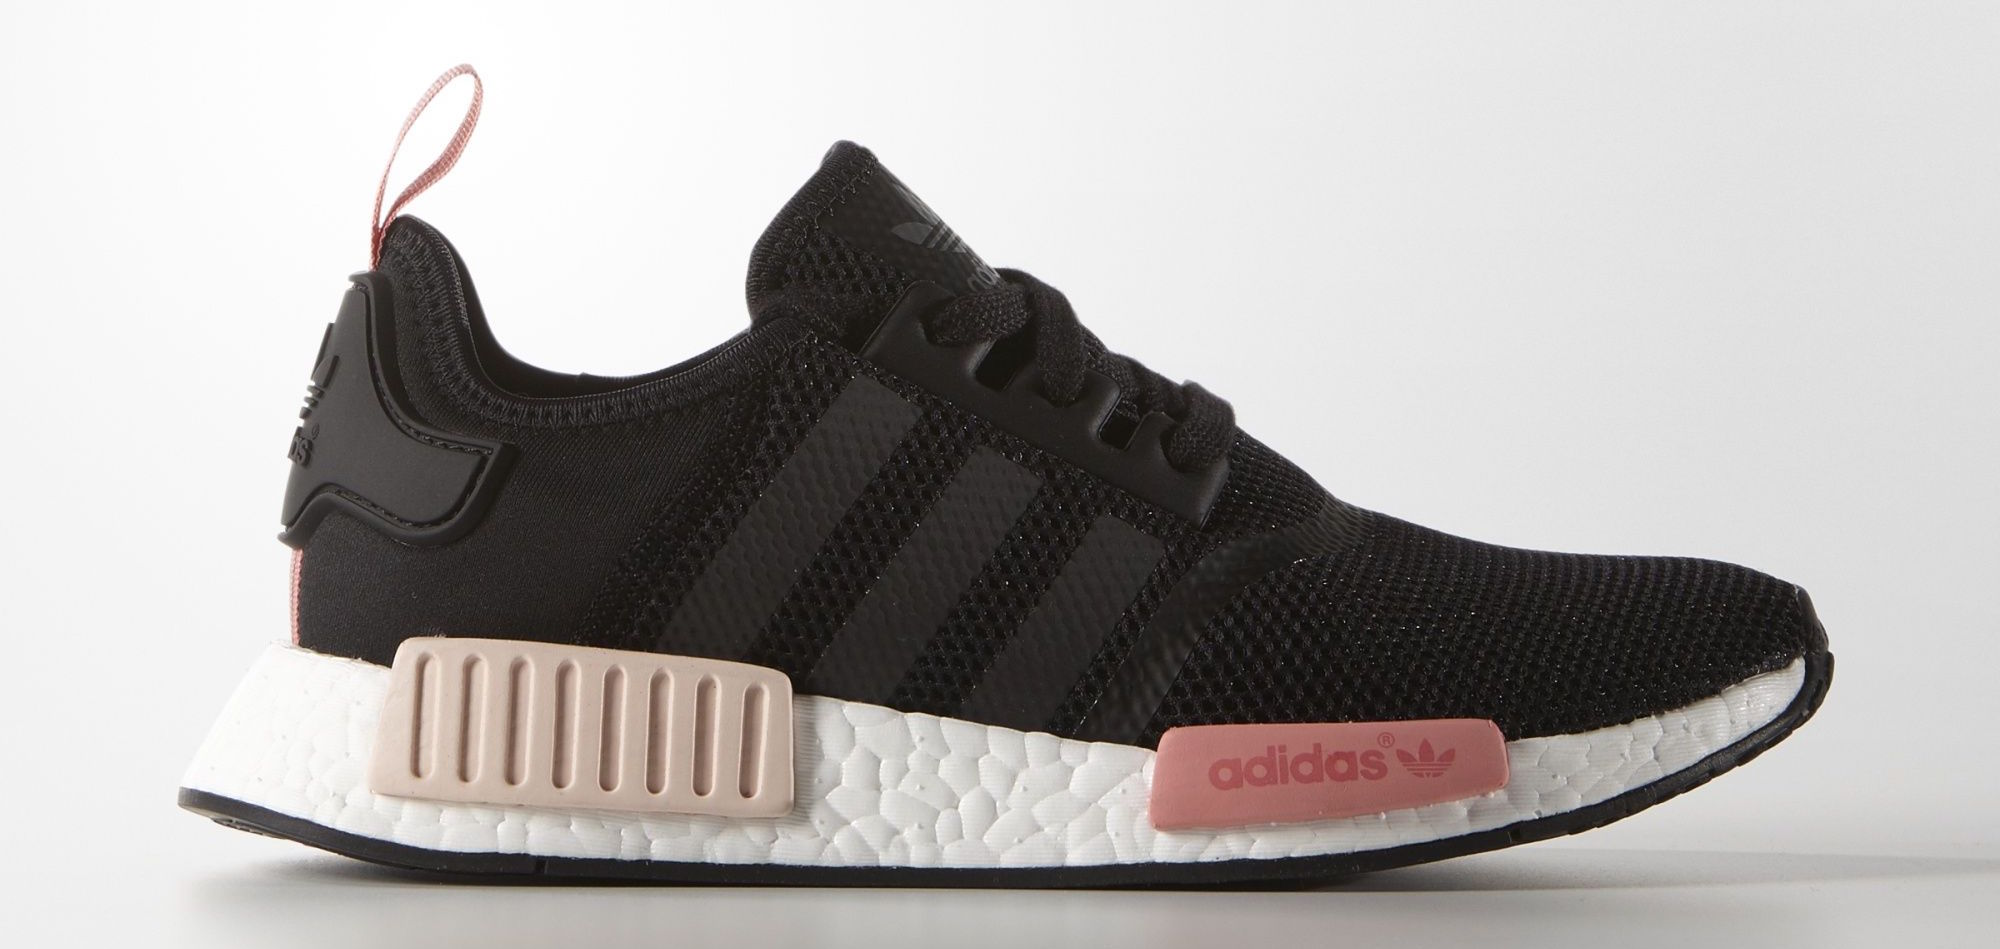 Adidas Nmd White And Pink